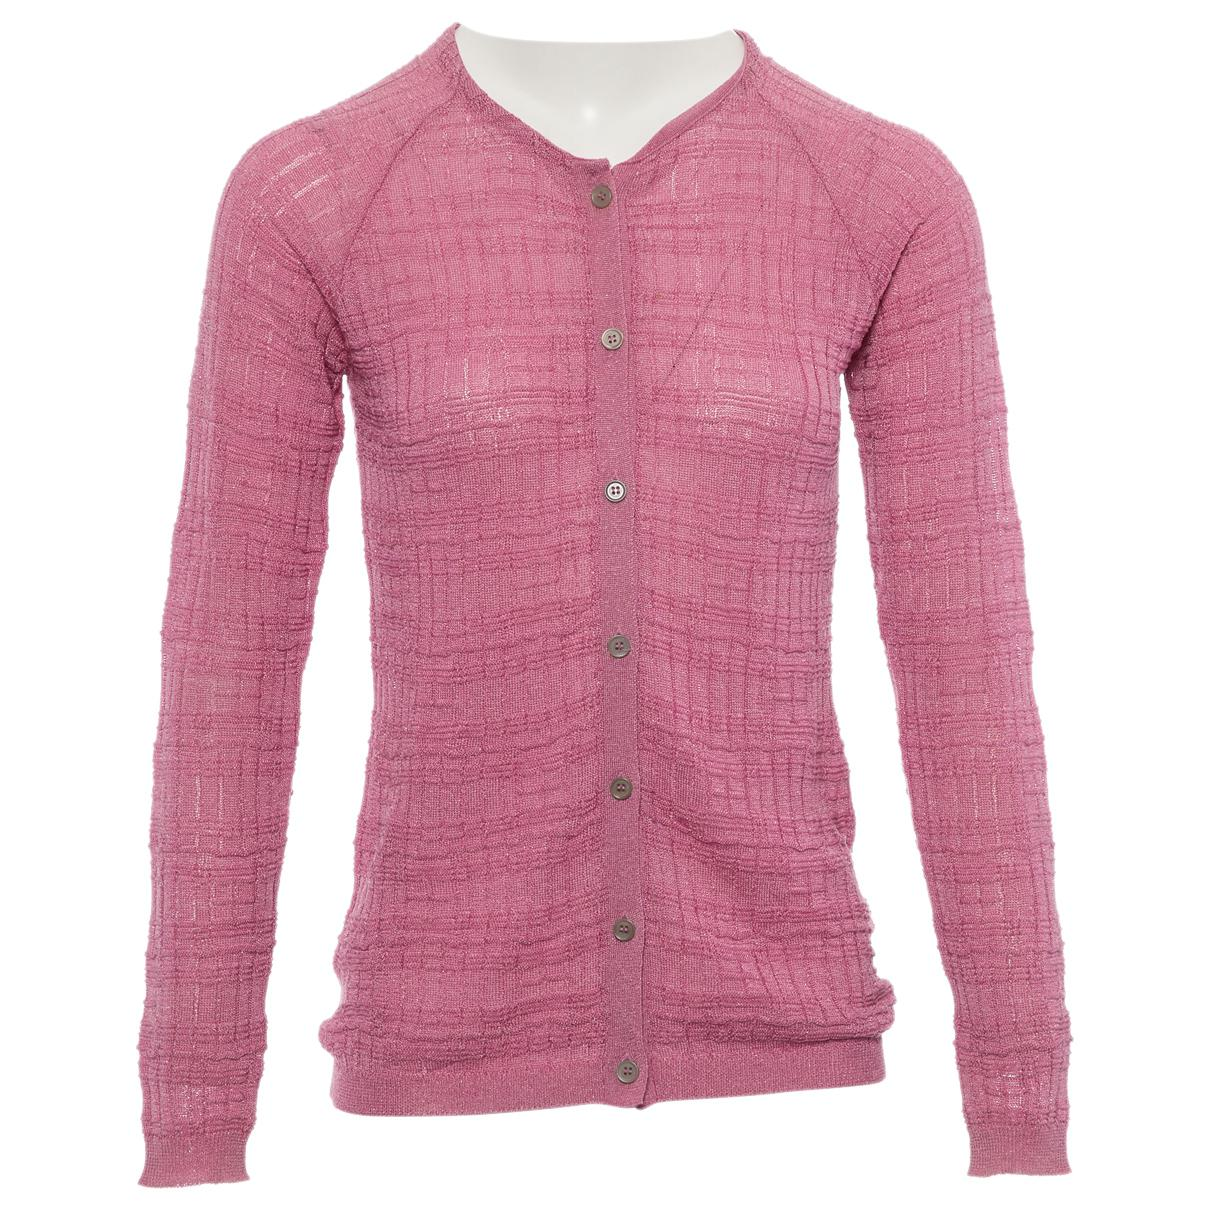 3e82c27888ab73 Marni Pre-owned Pink Synthetic Knitwear in Pink - Lyst